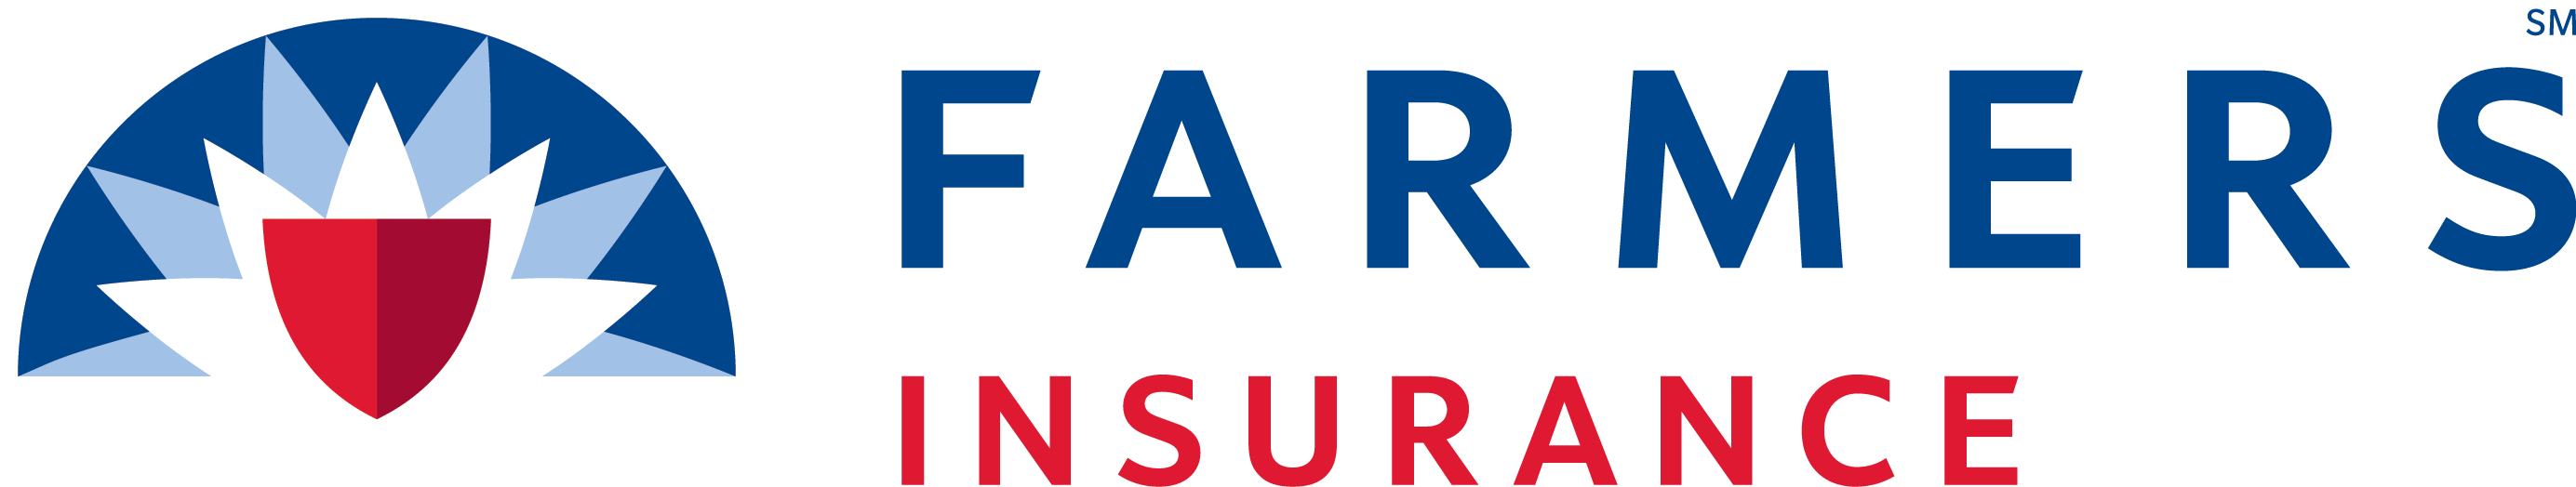 New Farmers Insurance Logo Png Important Wallpapers 2769x524